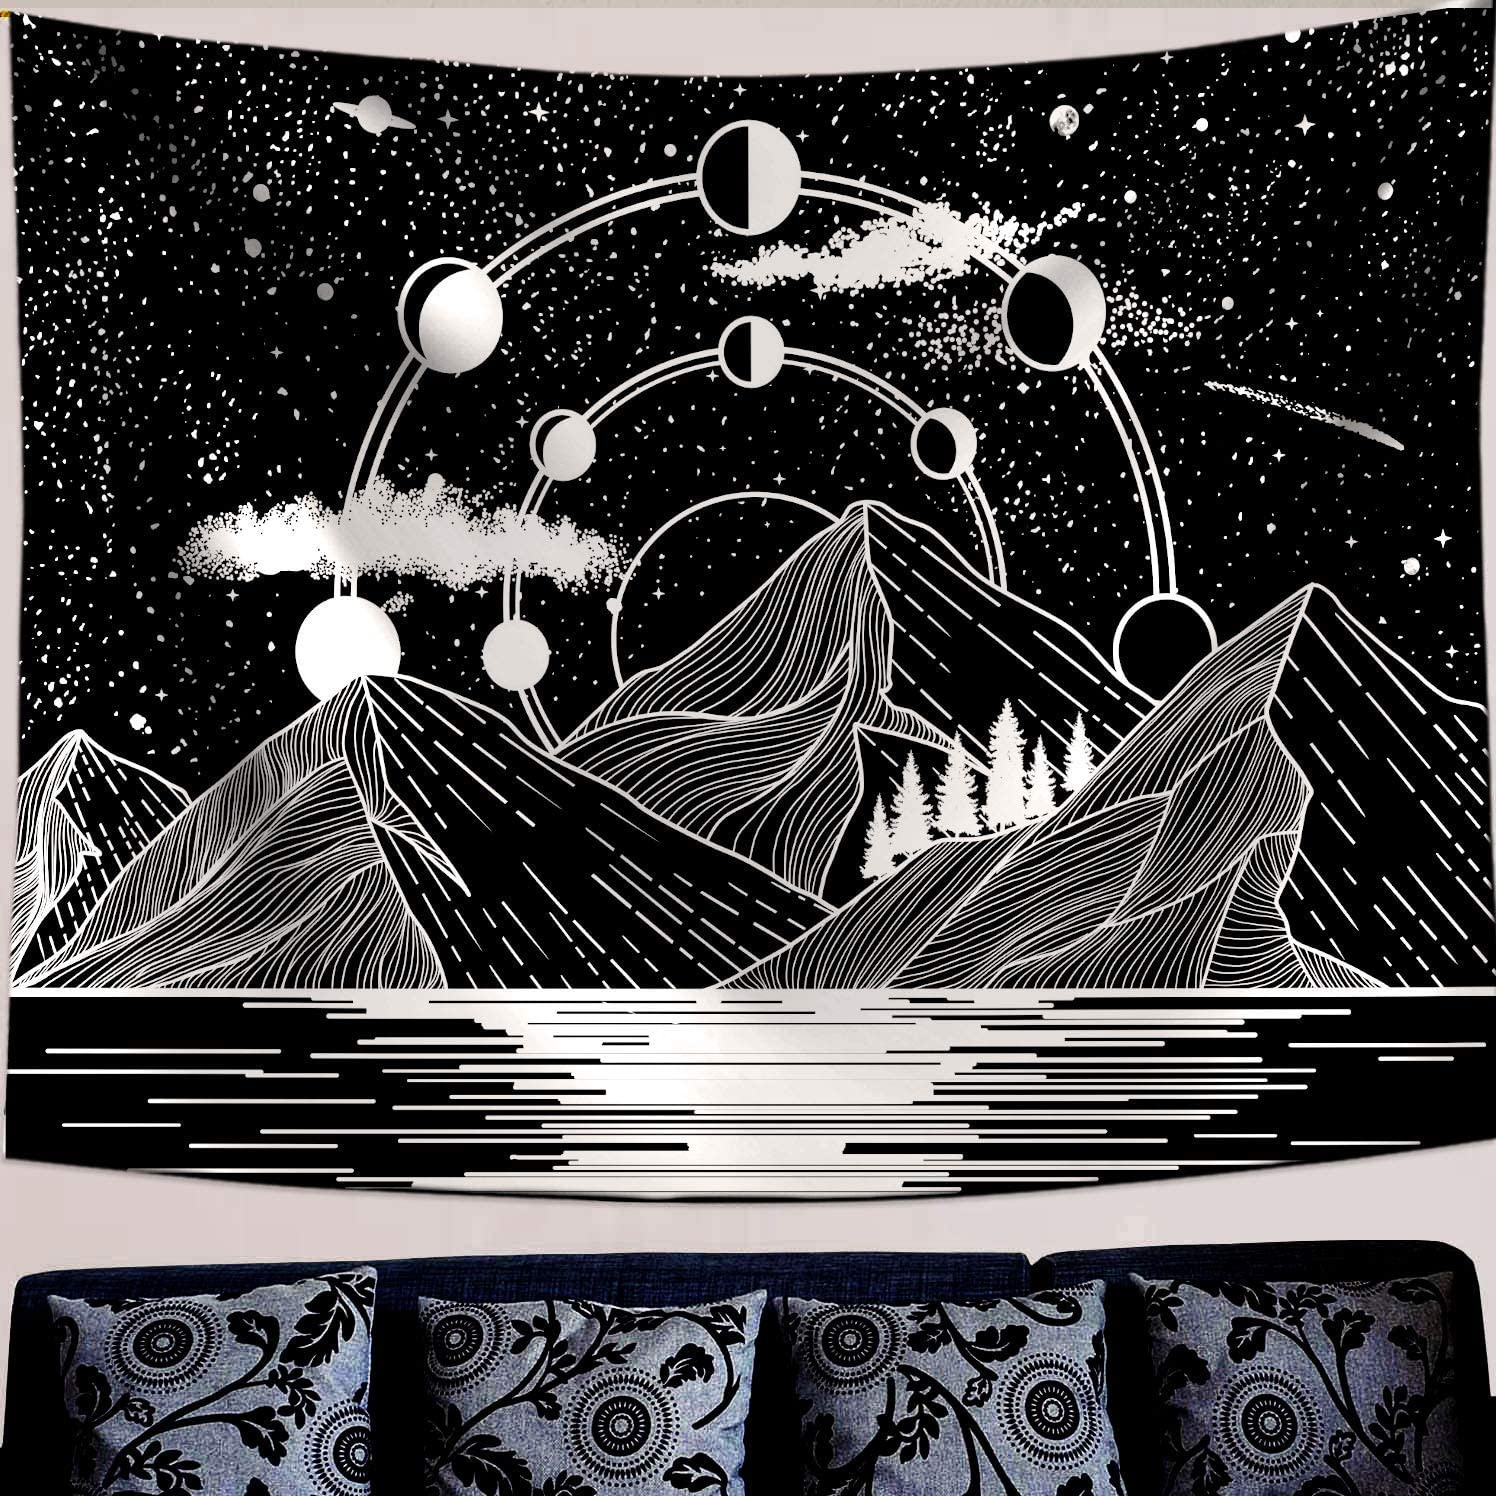 Zussun Mountain Moon Large special Popularity price Tapestry Stars River Art Black White Ta and